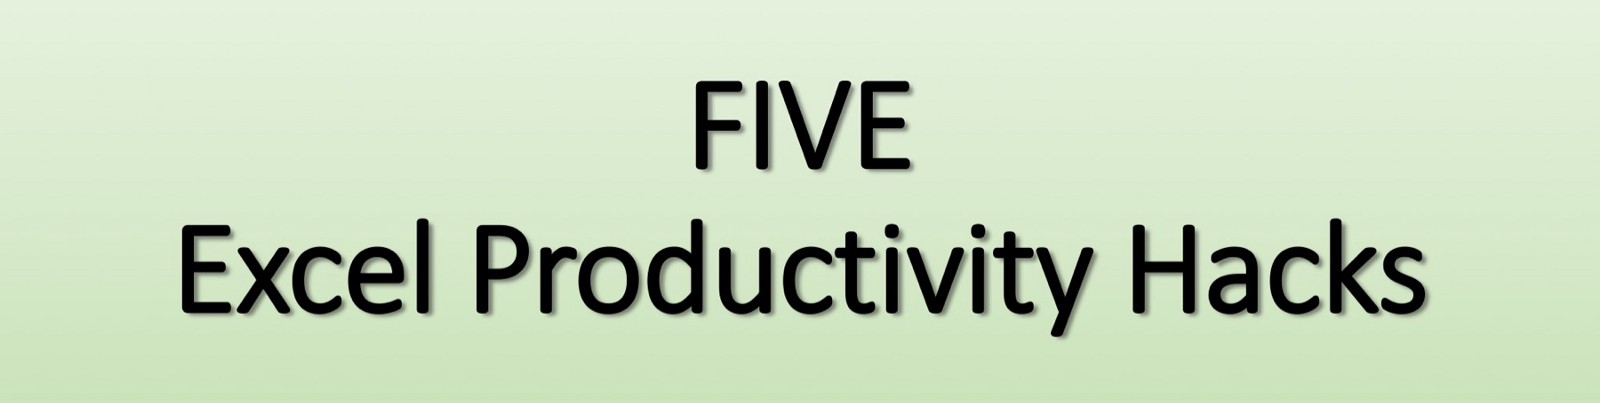 Microsoft Excel user? Consider these 5 Productivity Hacks!